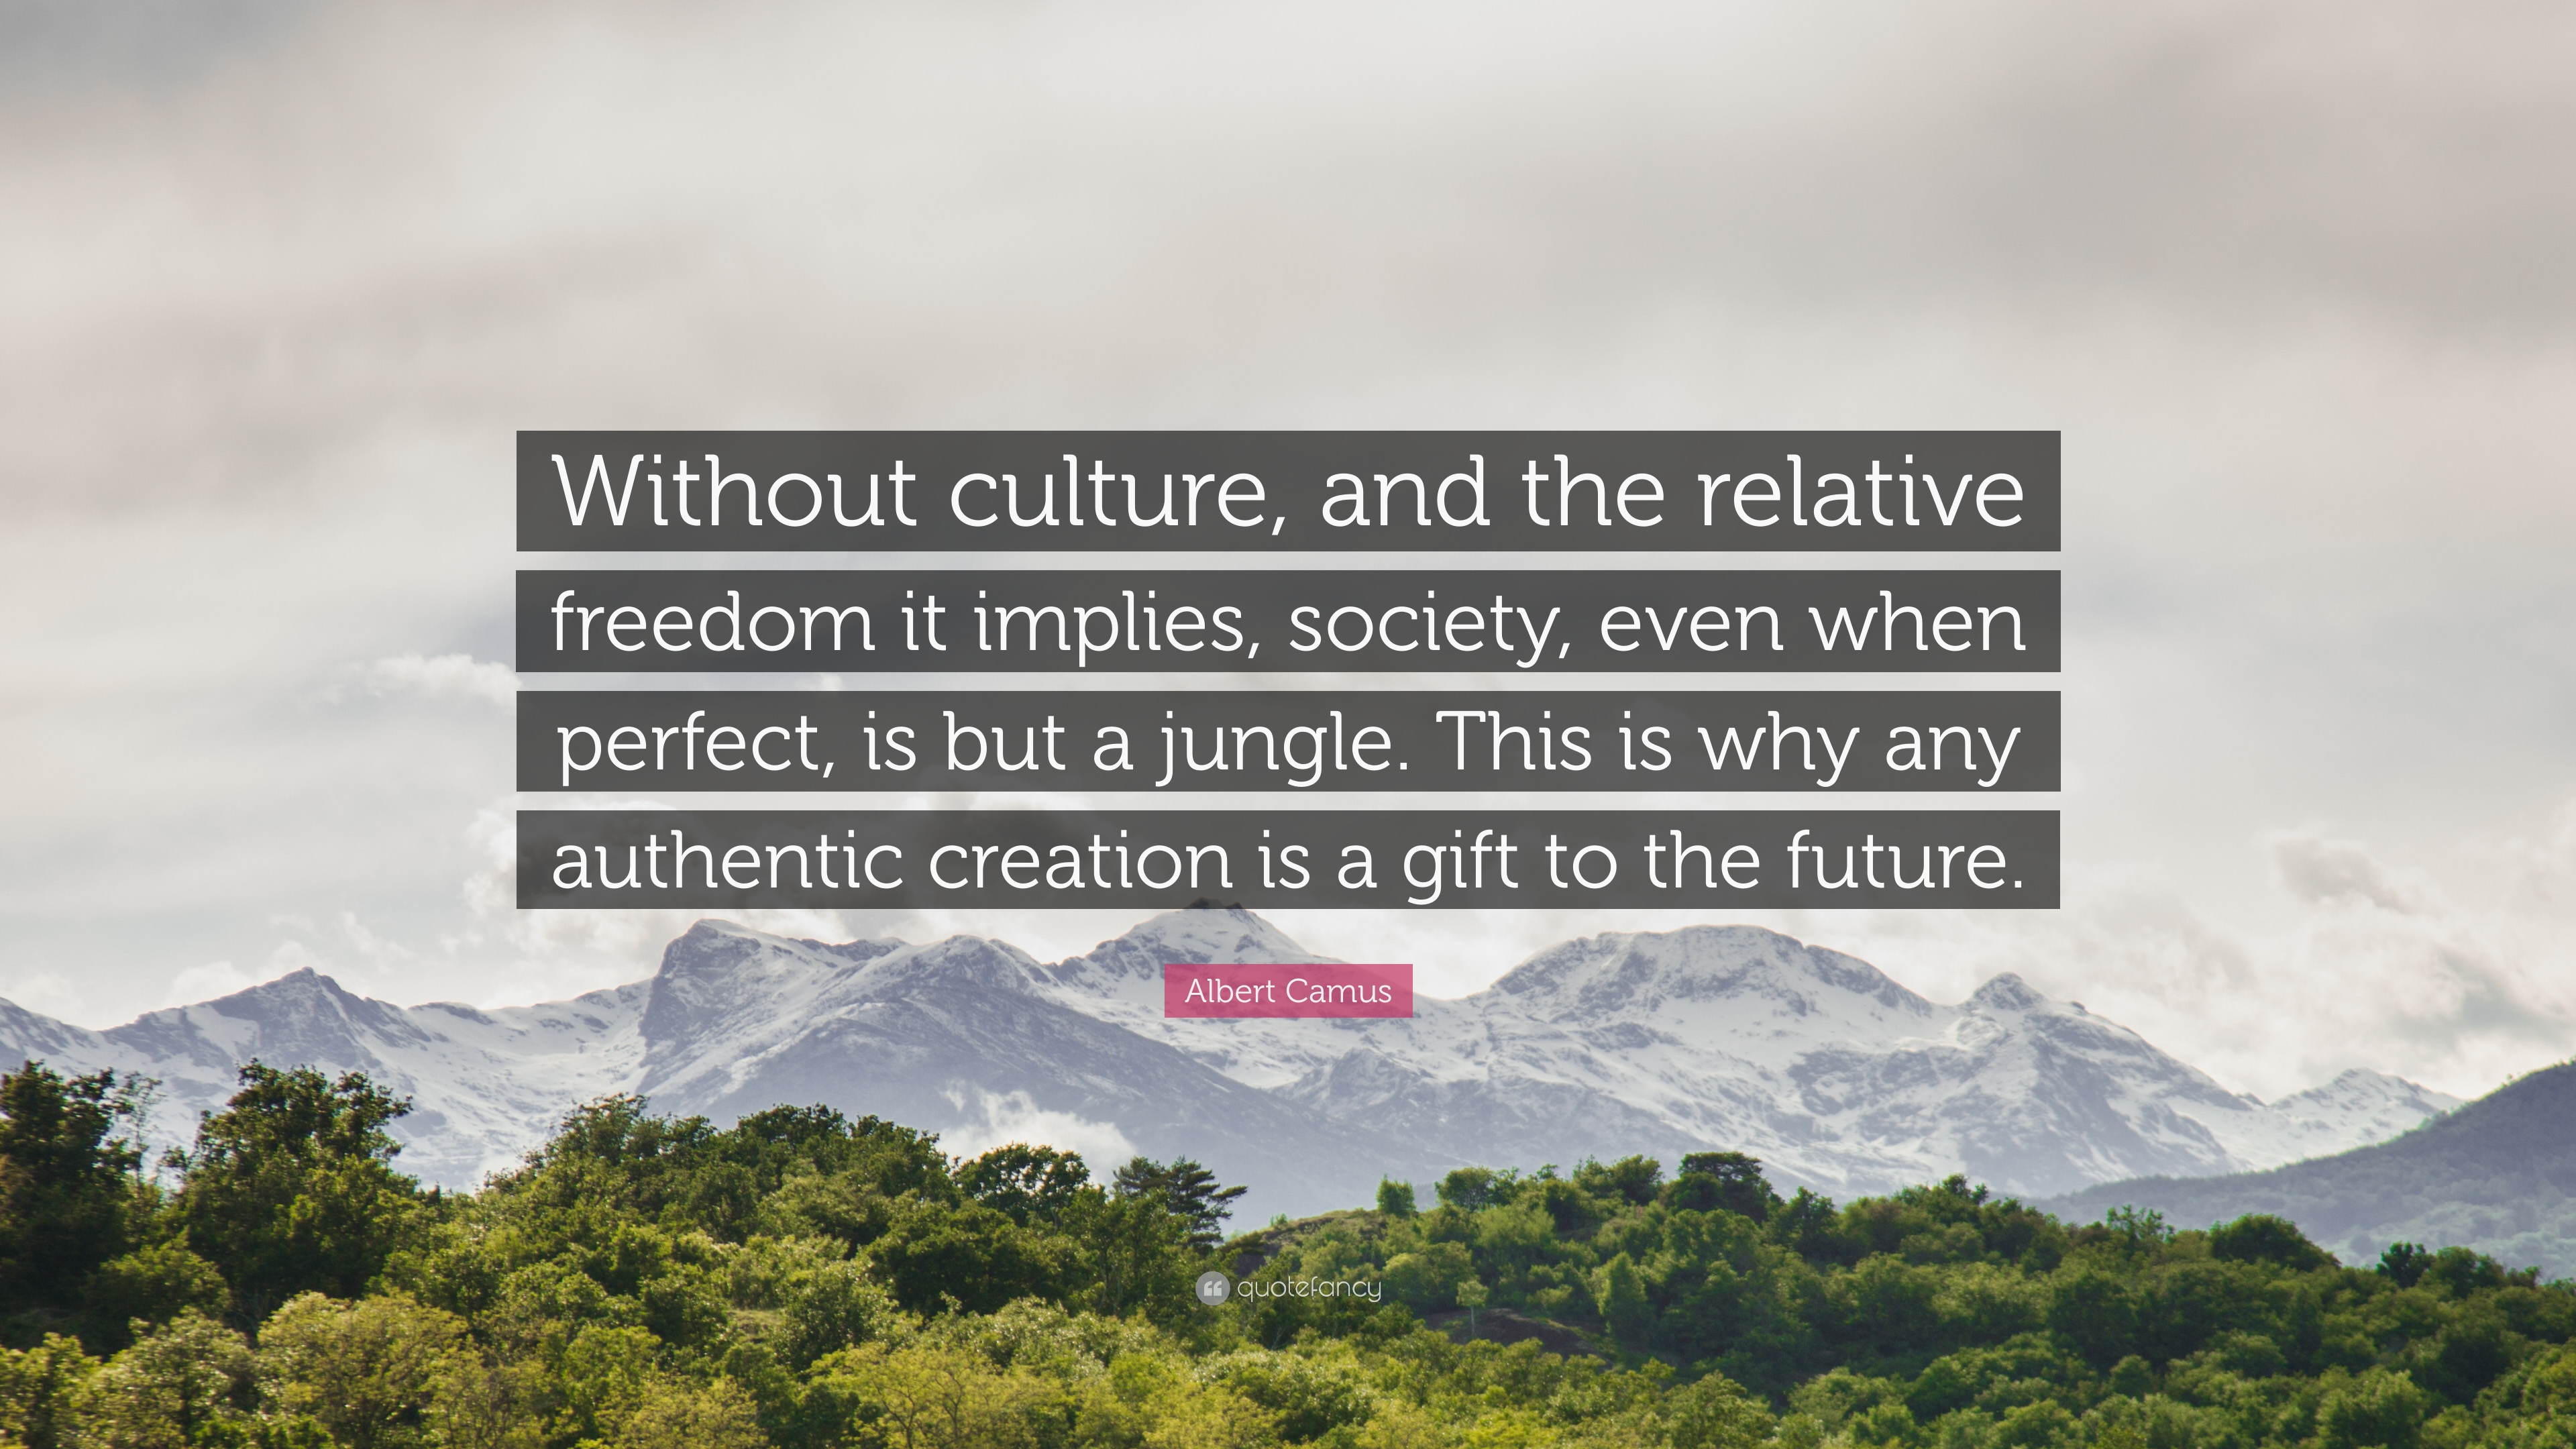 What are some quotes on being a creation of society?